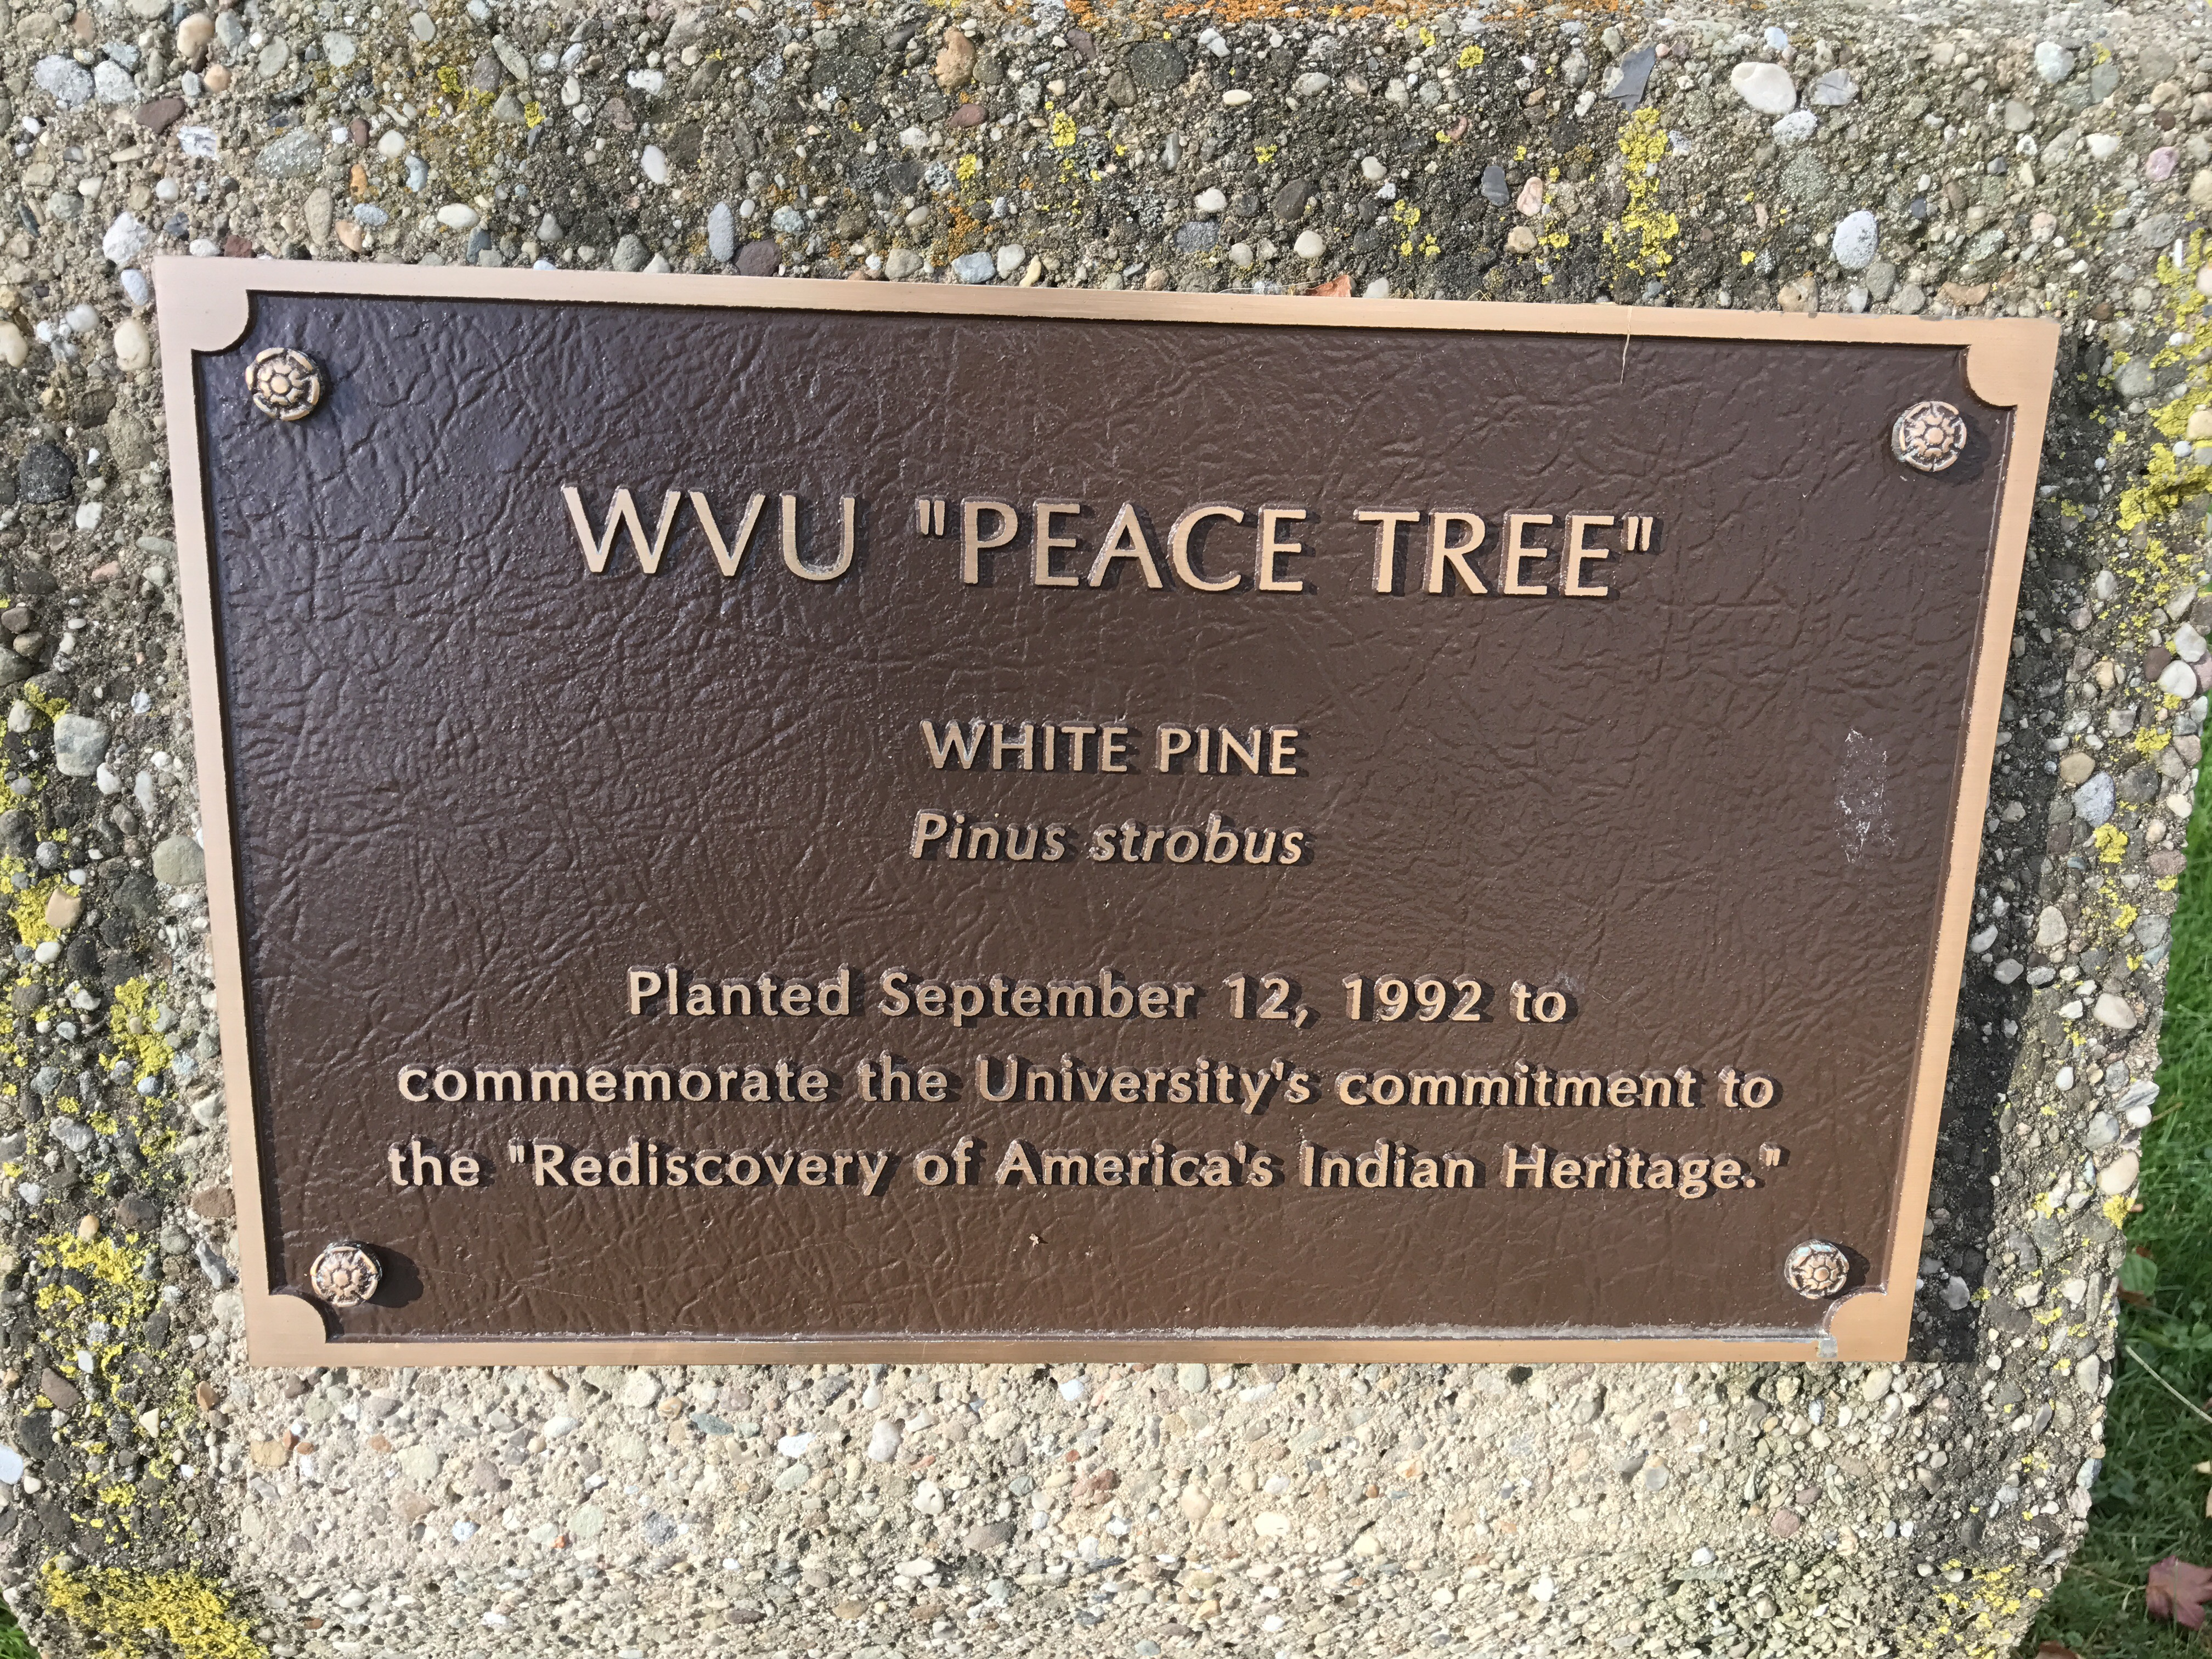 Plaque commemorating the Peace Tree.